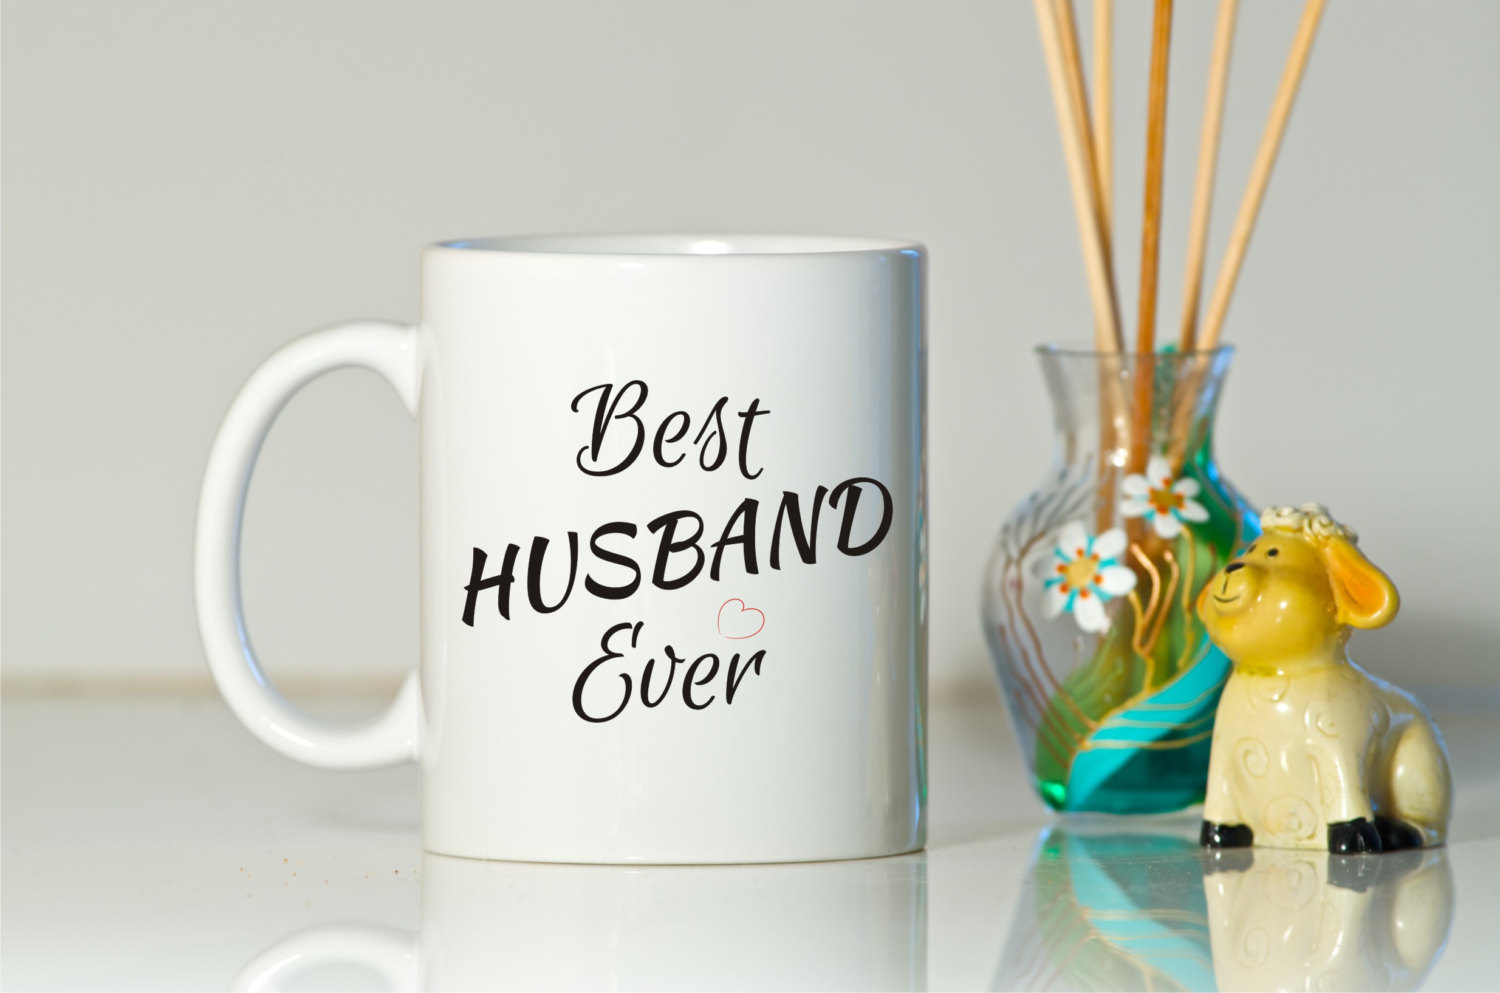 First Birthday Gift for Husband/Wife After Wedding : romantic birthday gifts for husband - medton.org